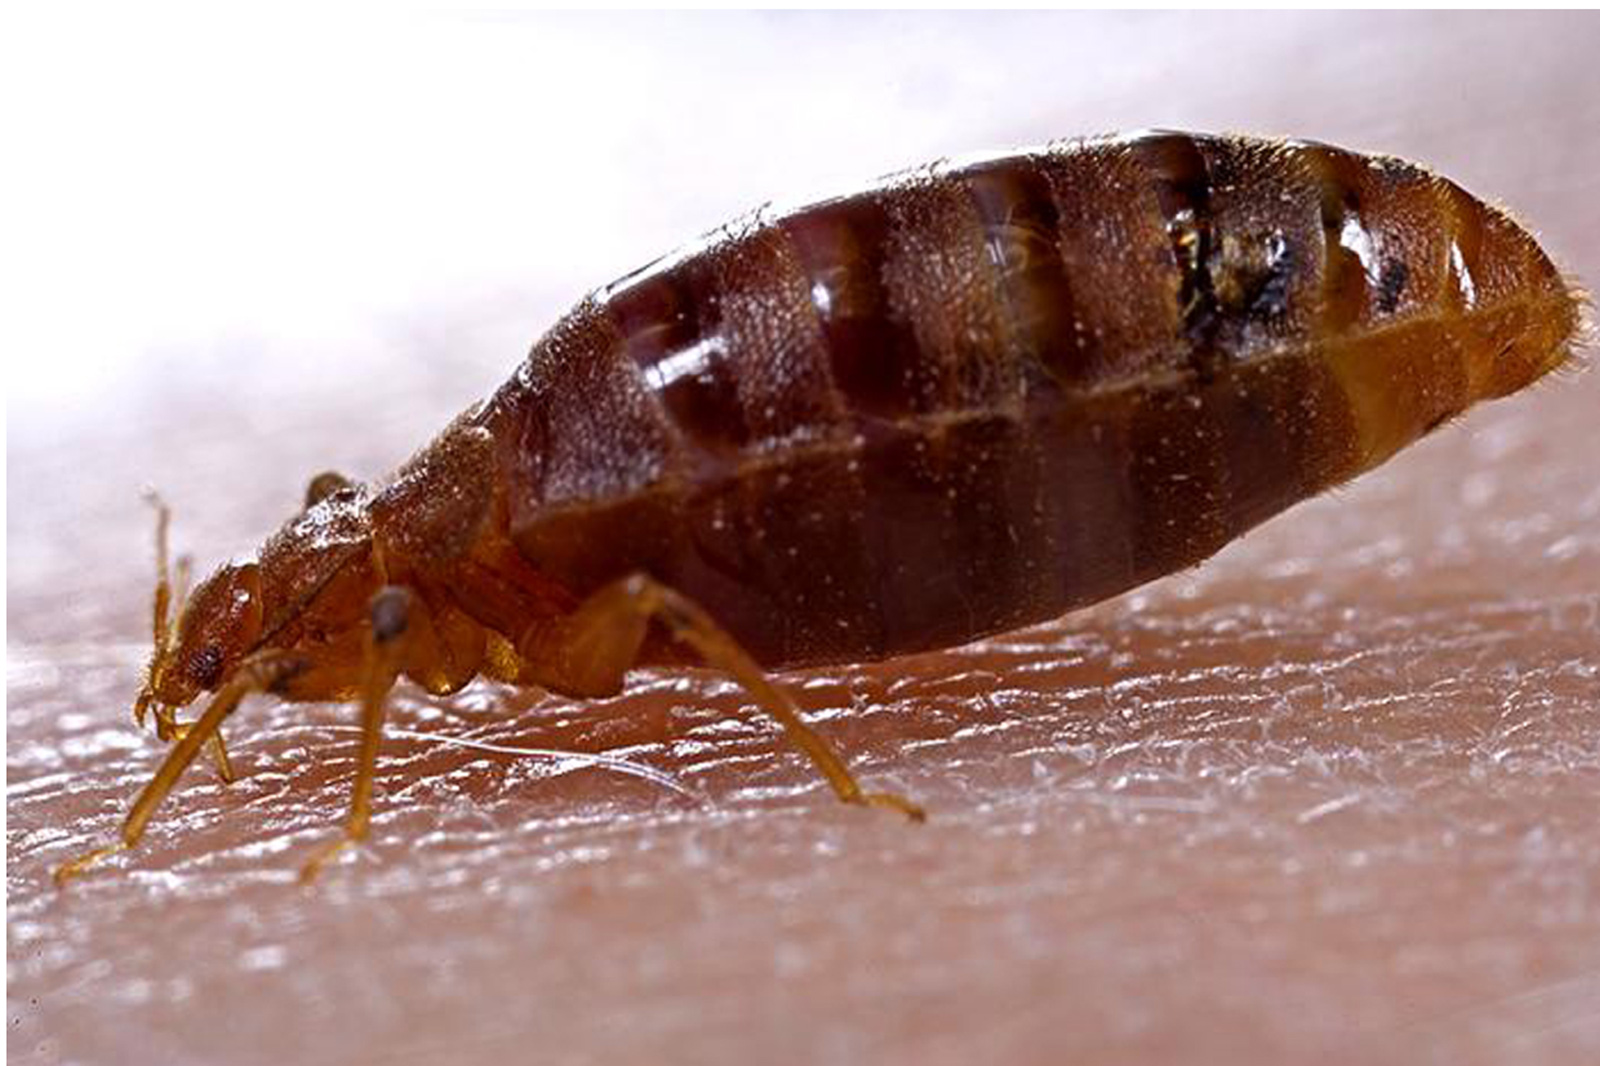 How To Identify True Bed Bugs From Potential Imposters